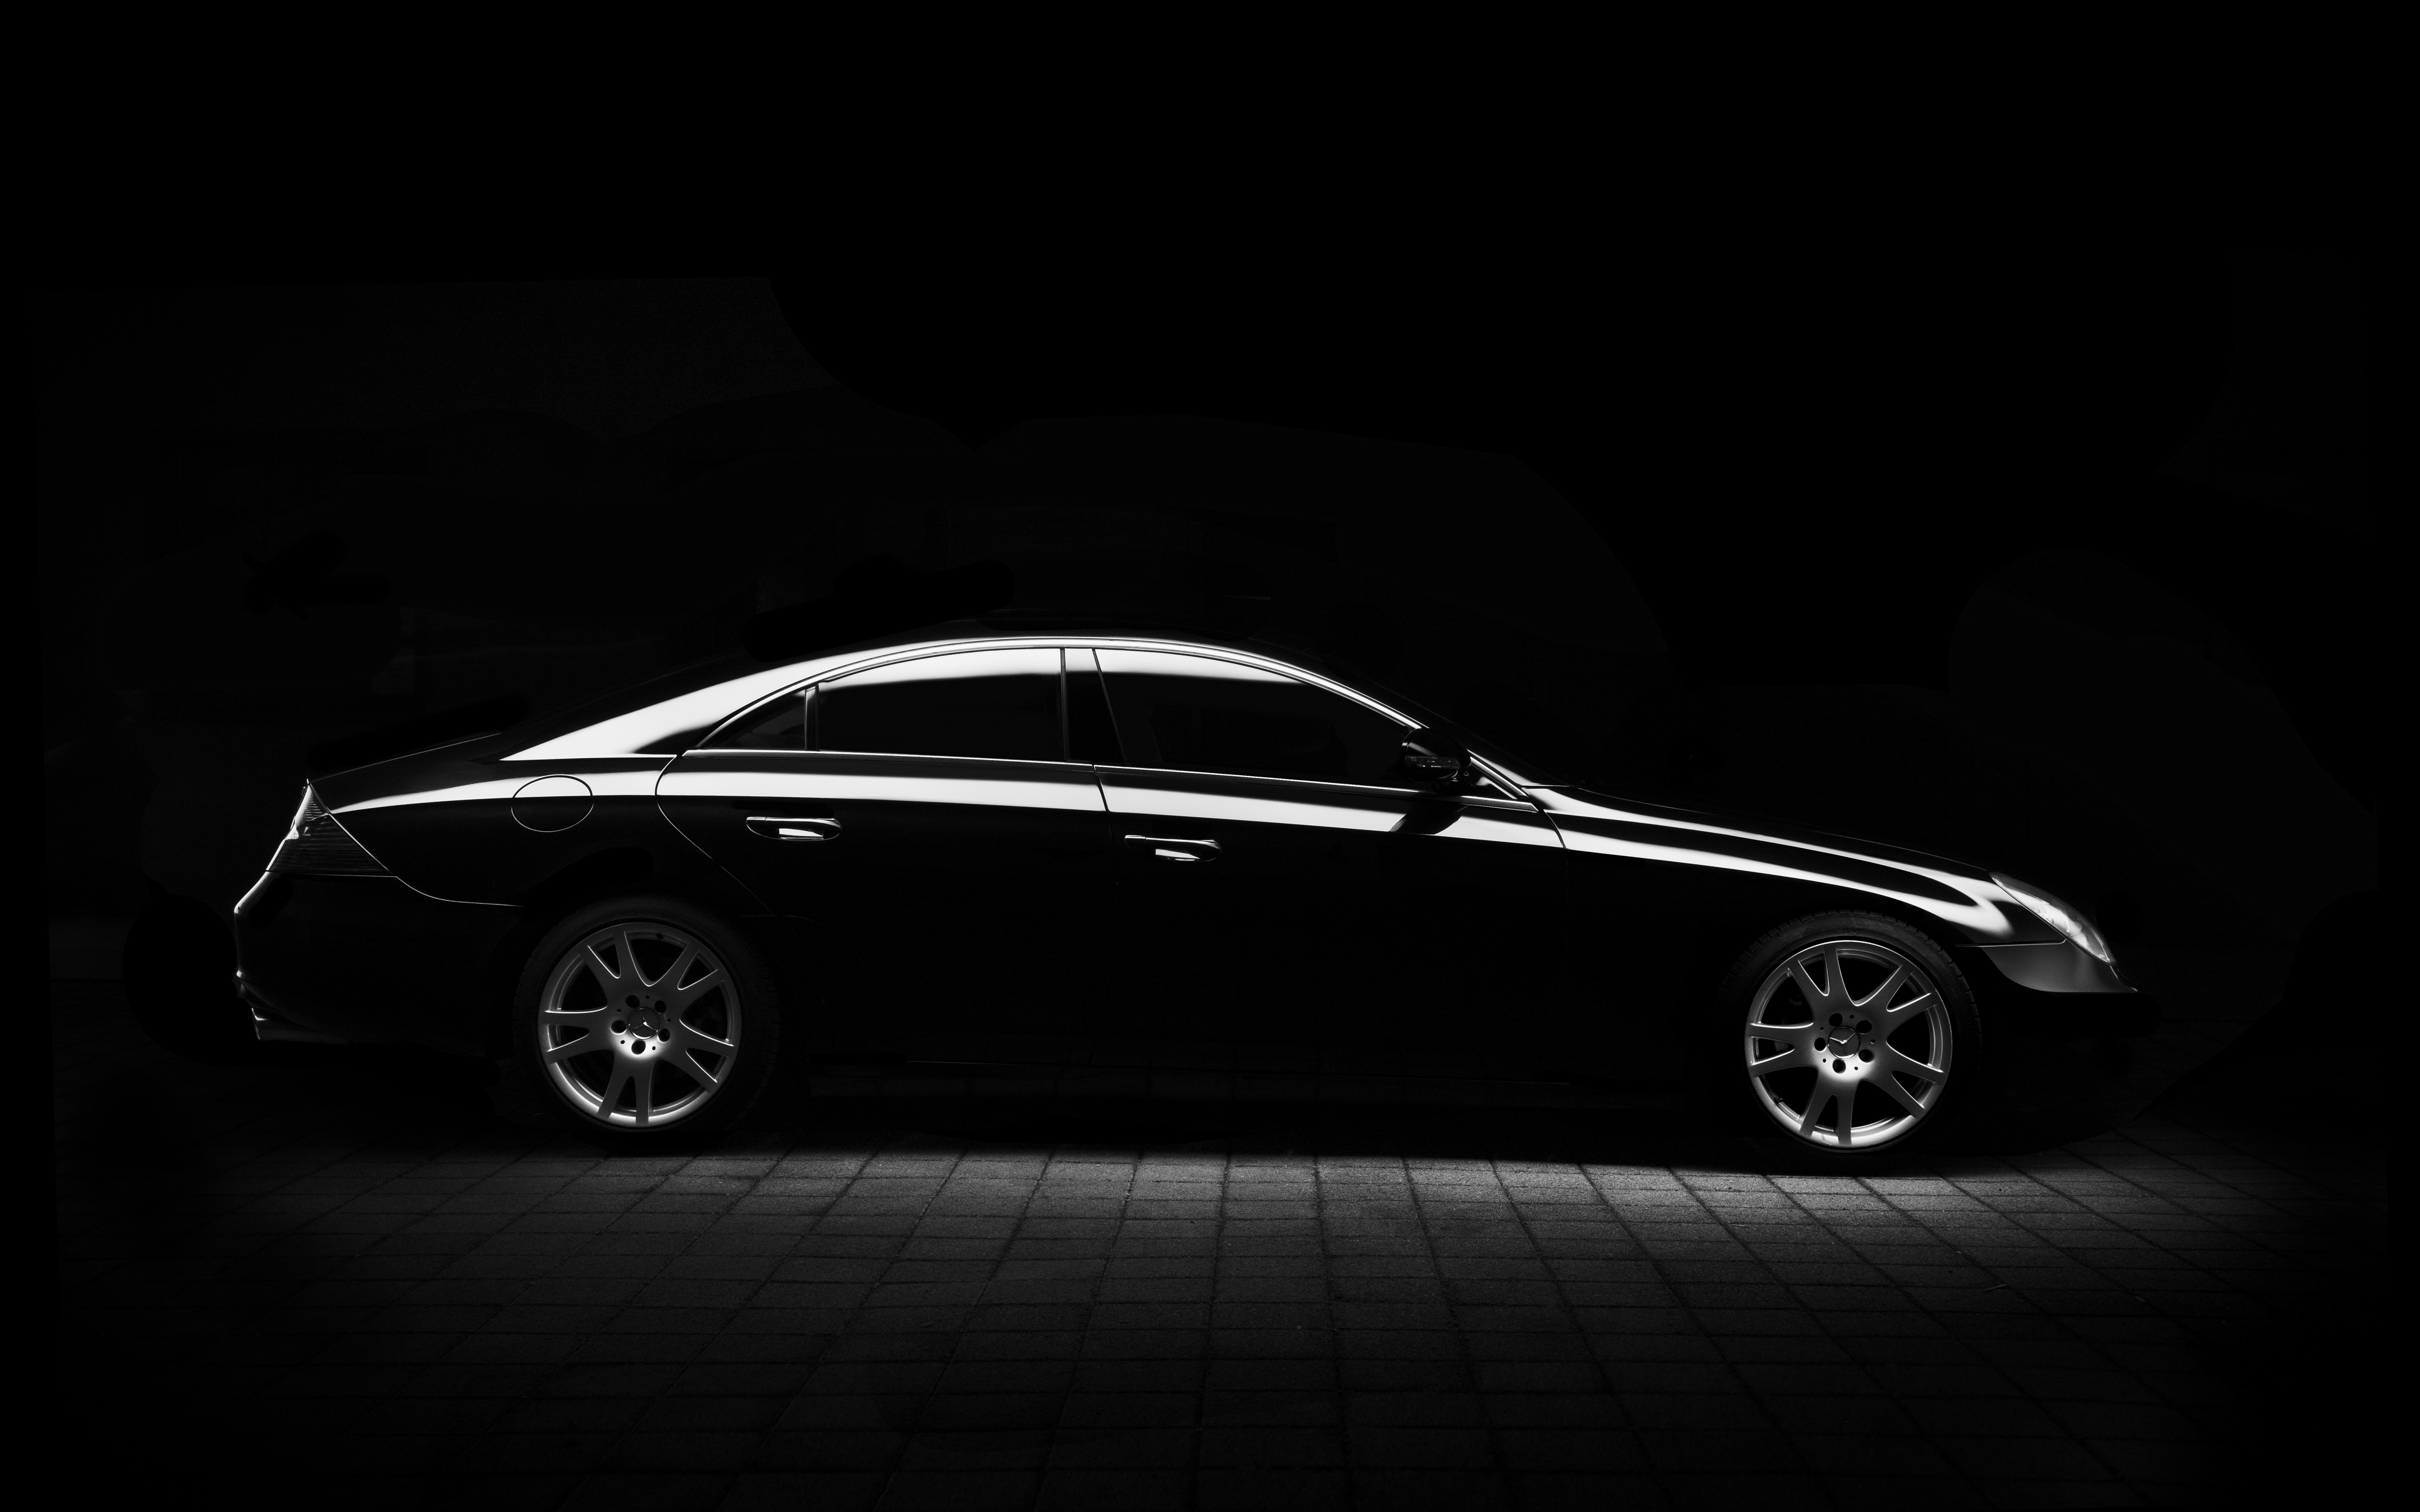 Black and white shot of black Mercedes-Benz saloon car on pavement at night